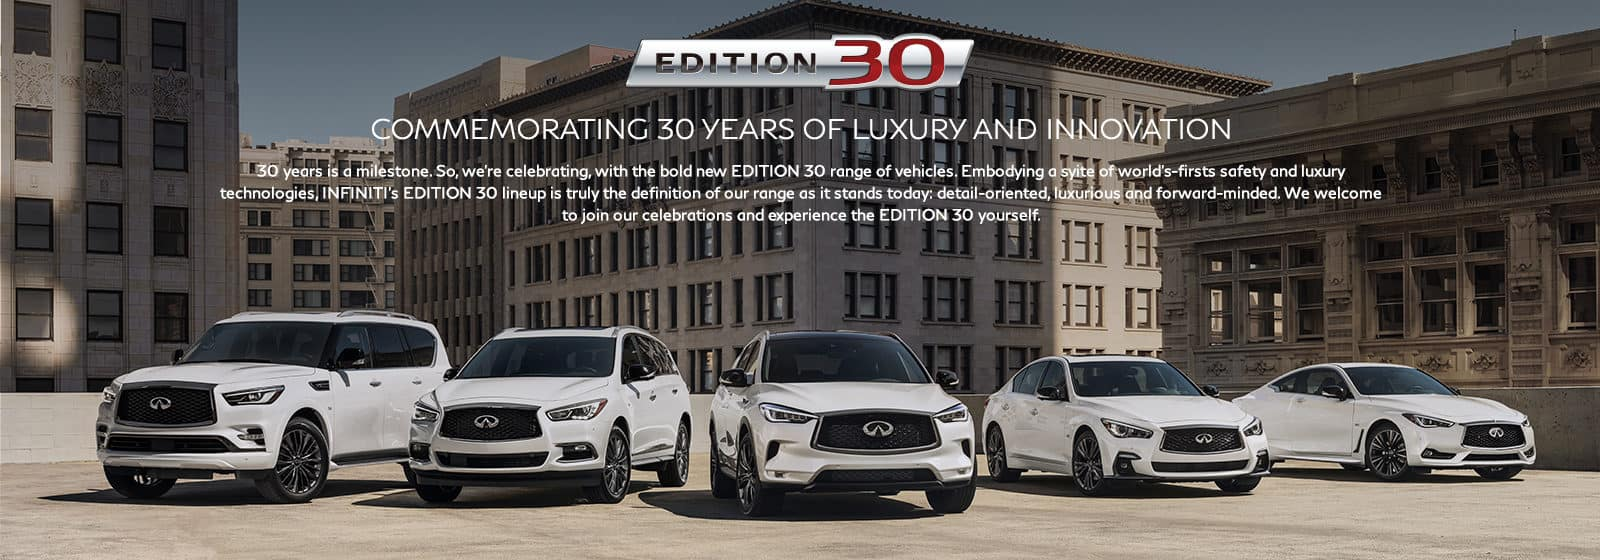 Welcome to Berman INFINITI Chicago - Edition 30